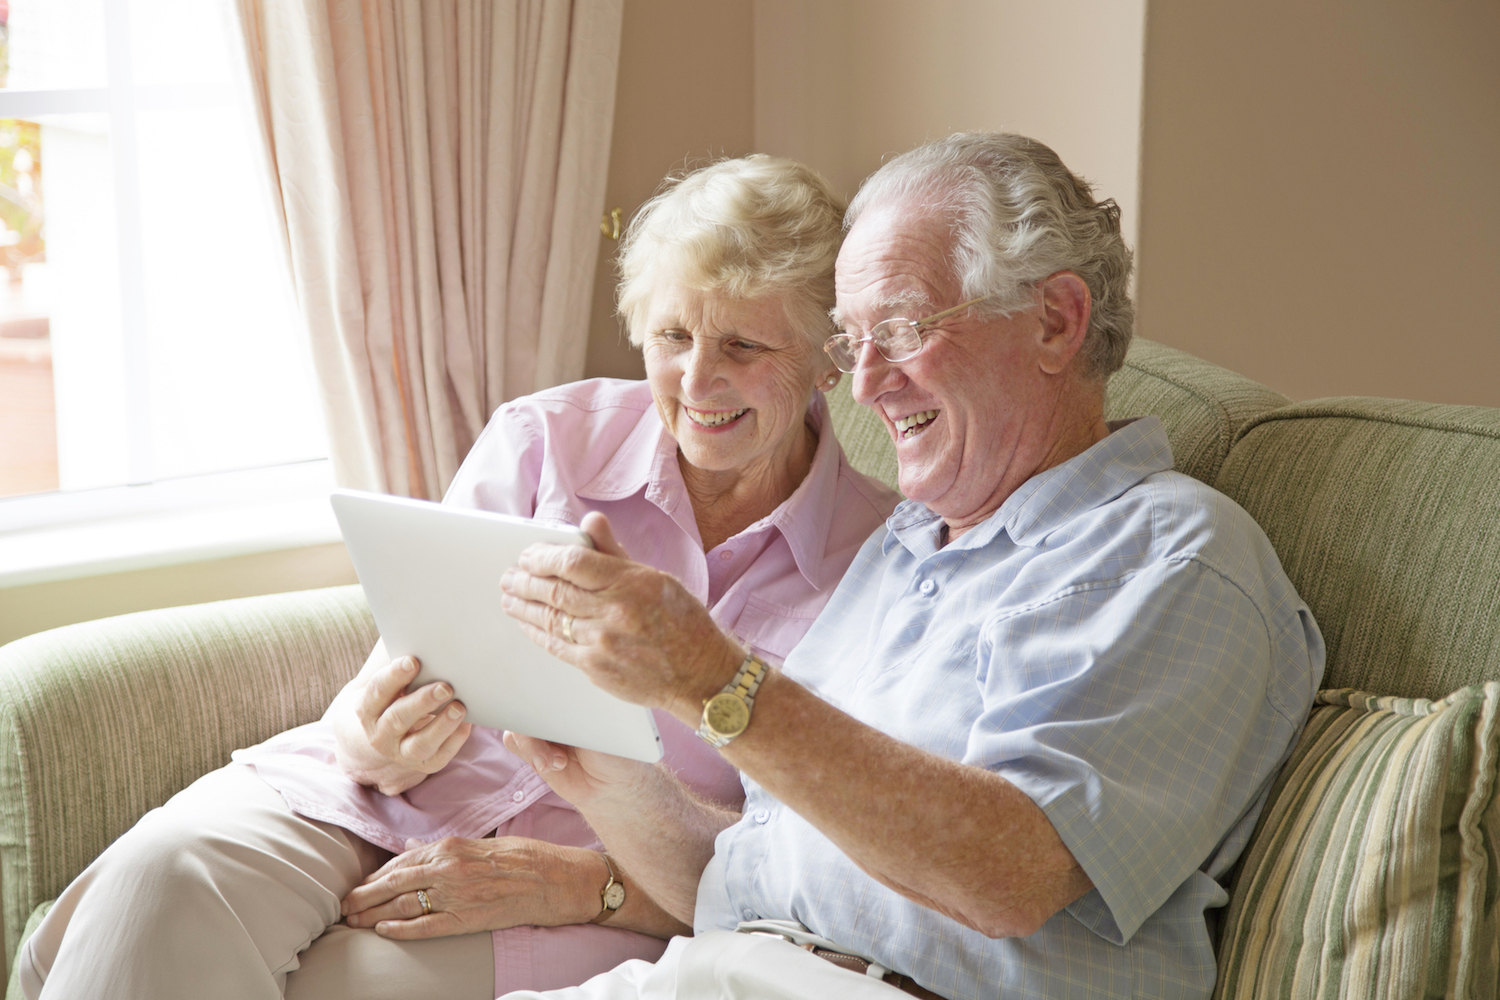 elderly-couple-aged-75-80-looking-at-photos-on-a-tablet-comp-1